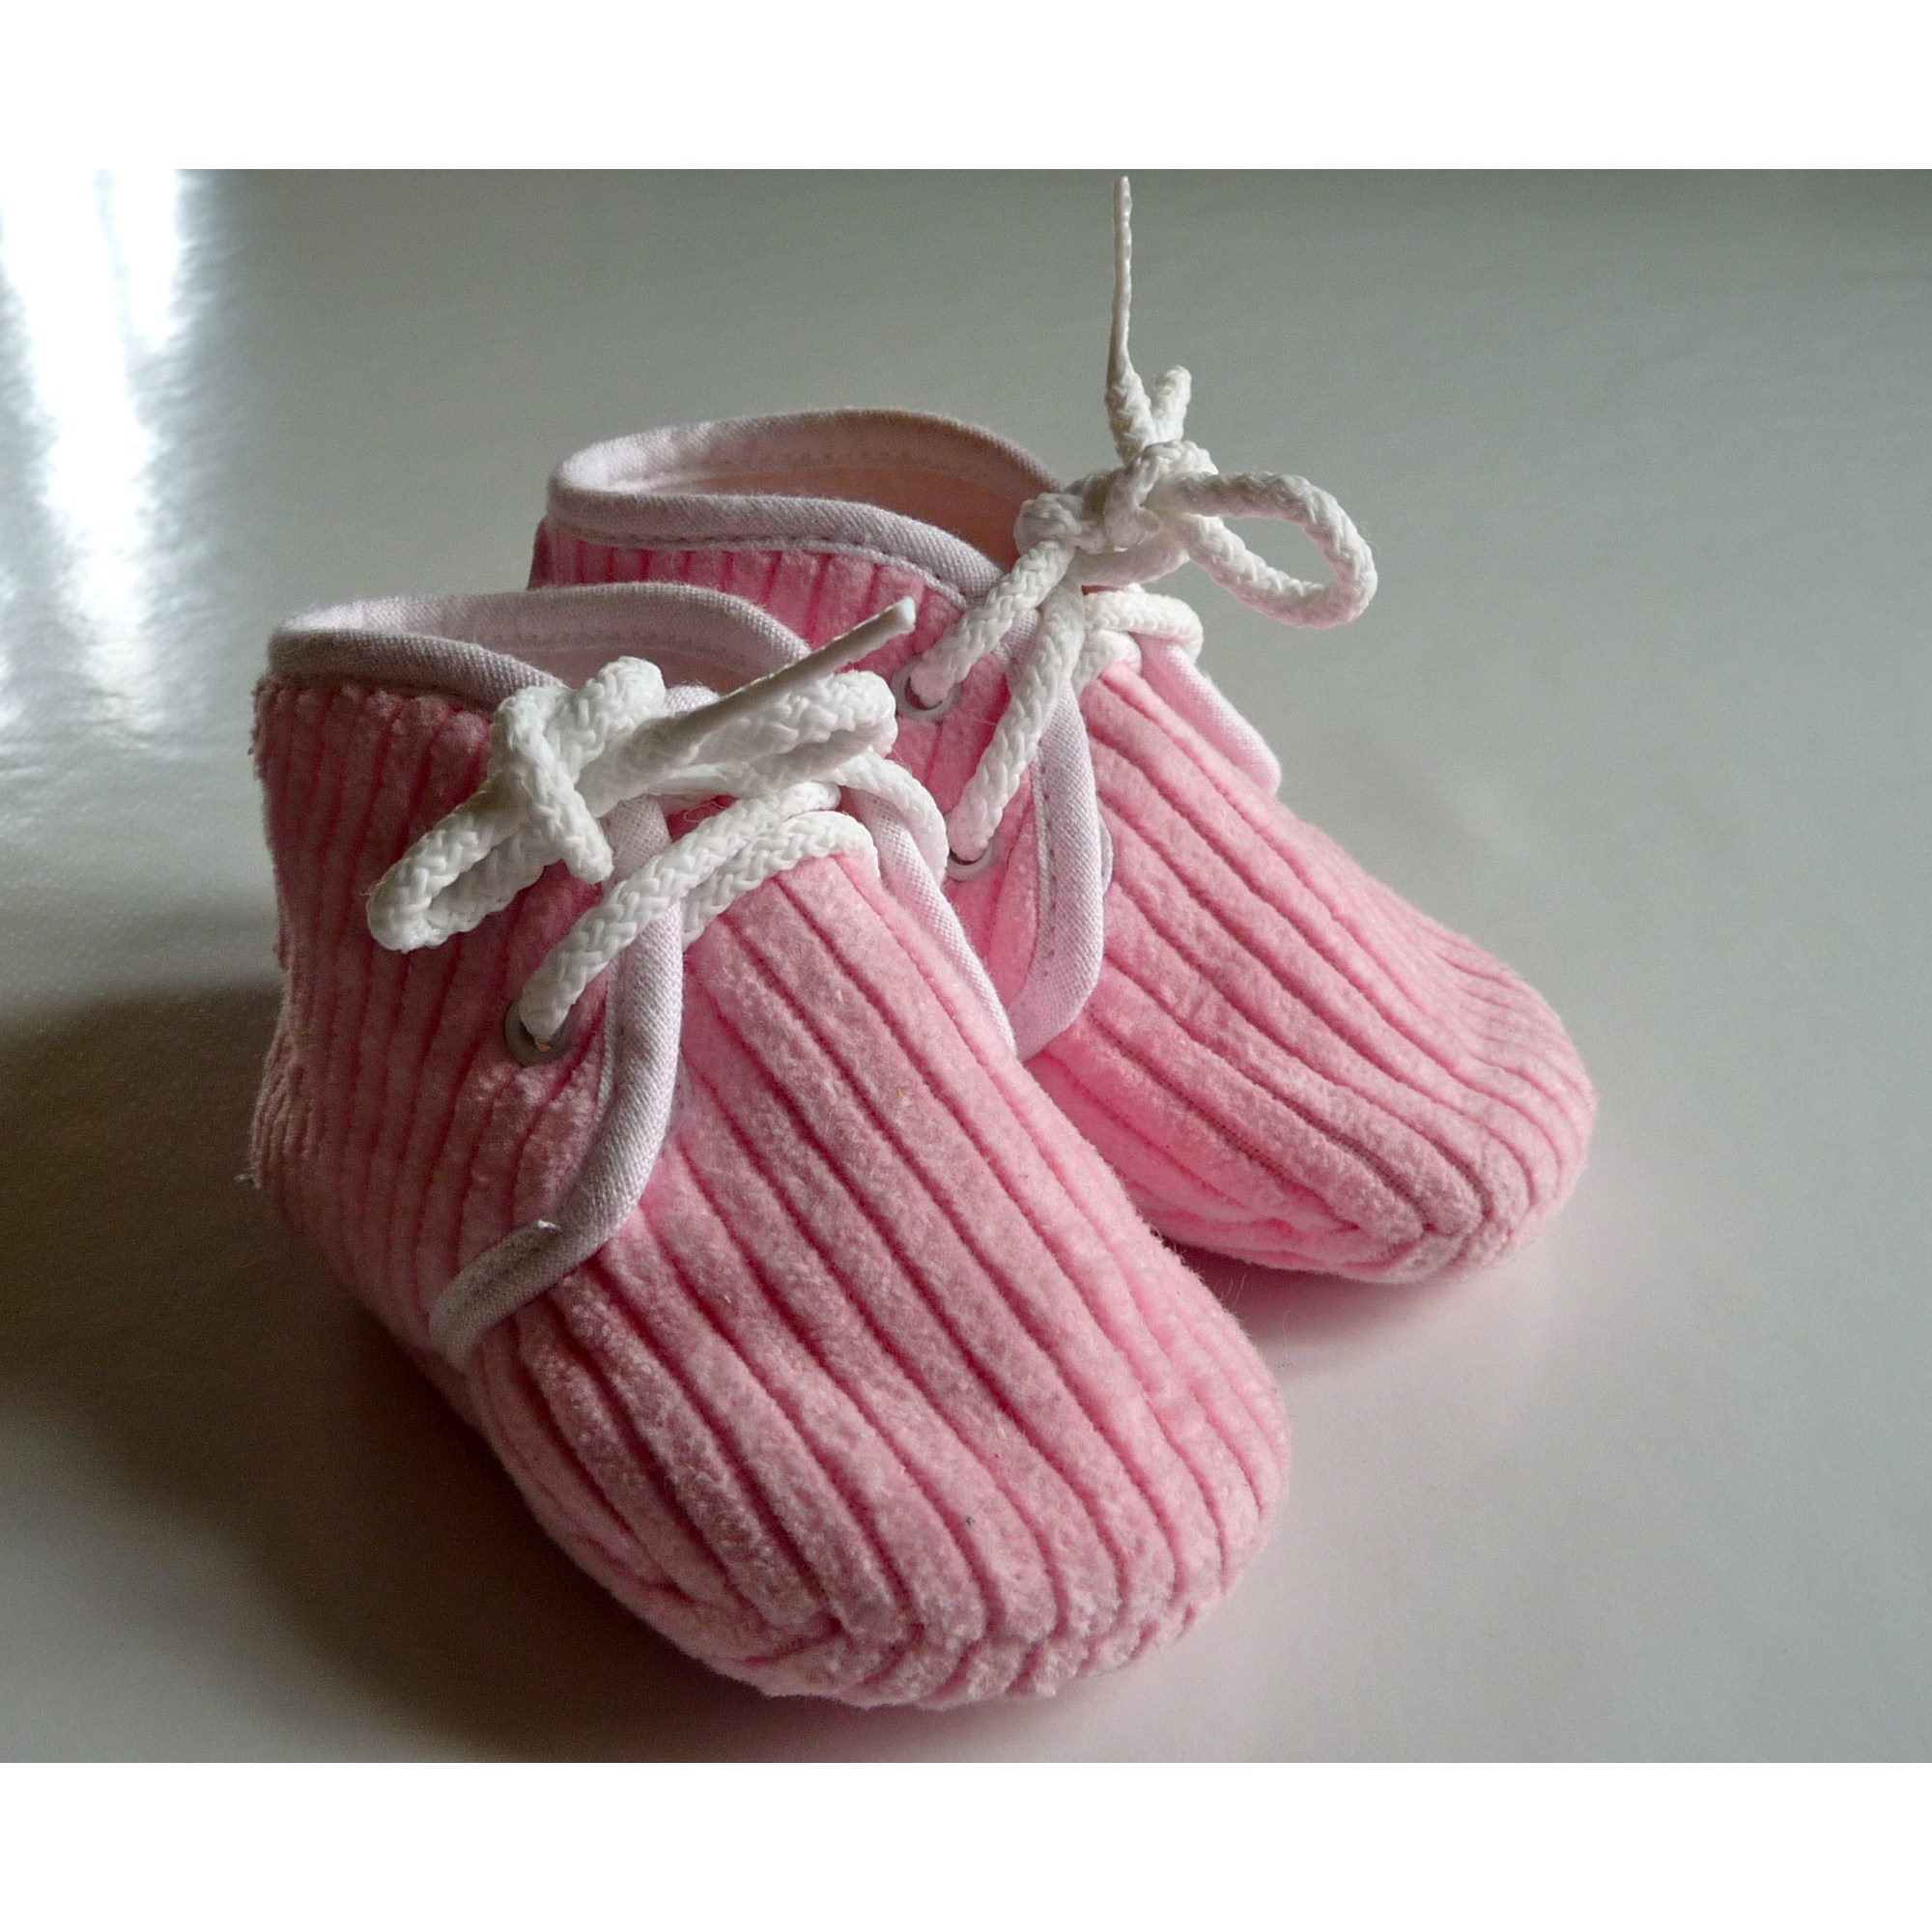 Slippers MARQUE INCONNUE Pink, fuchsia, light pink